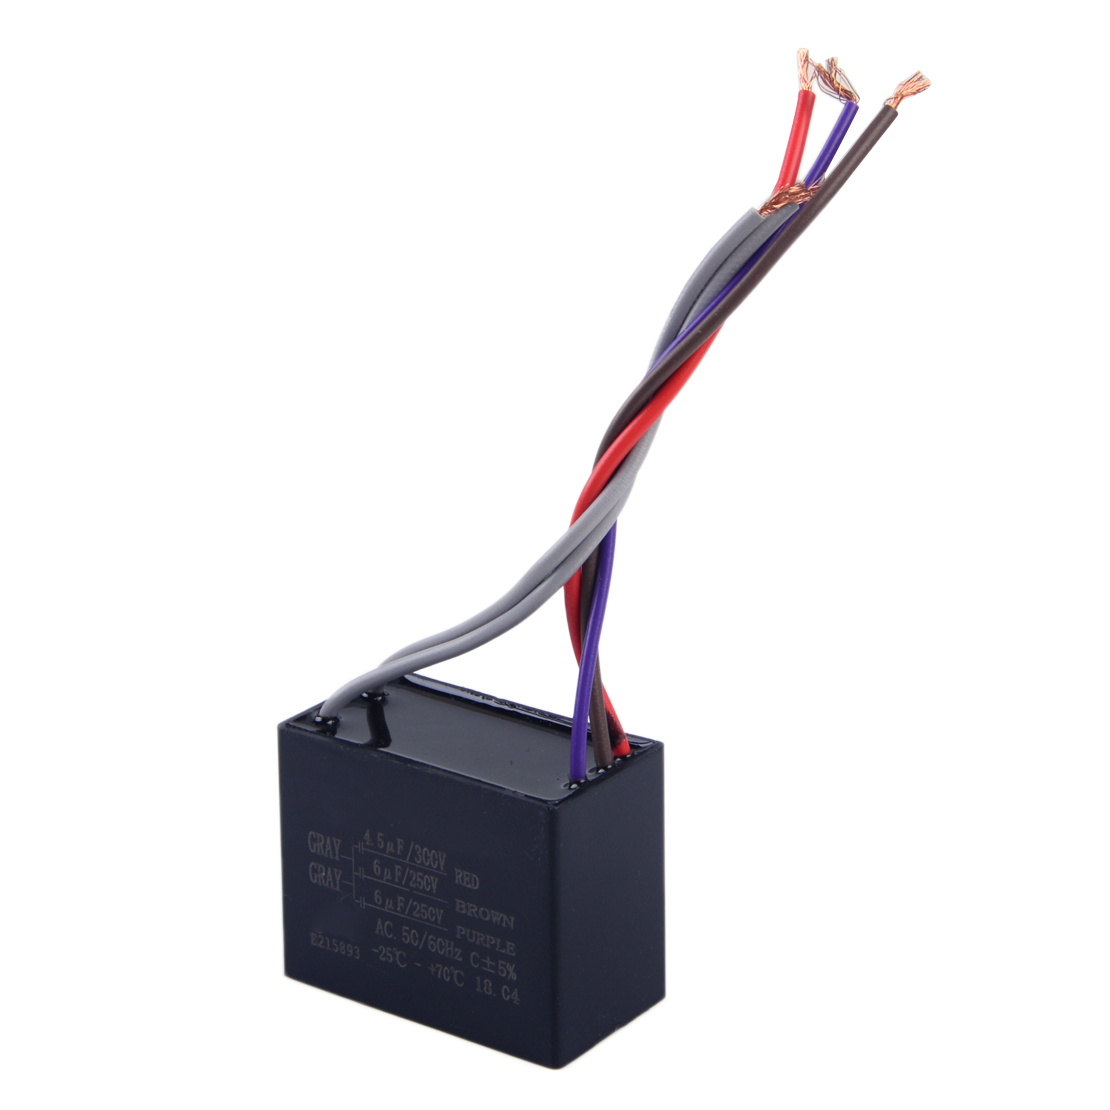 hight resolution of 4 cbb61 capacitors control the start and stop mechanisms and fan speeds on many different types of ceiling fans motors using these types of capacitors